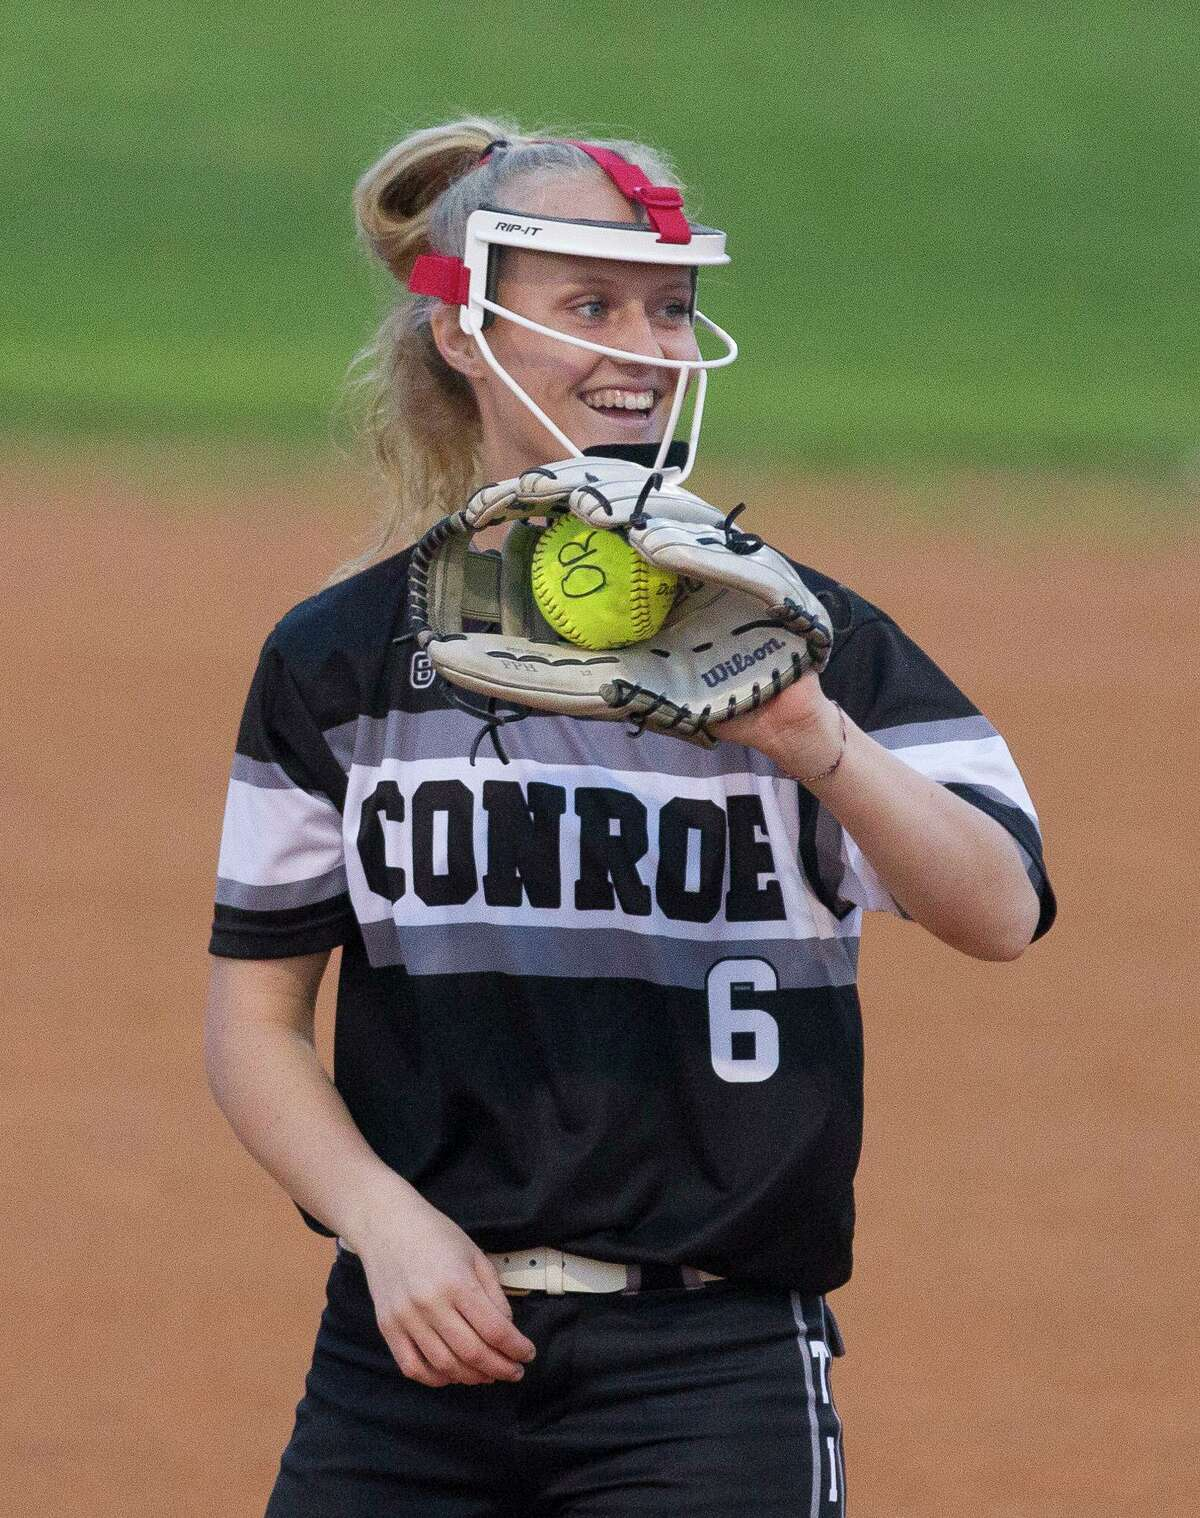 Madelyn Tannery is shown pitching for Conroe in 2018.